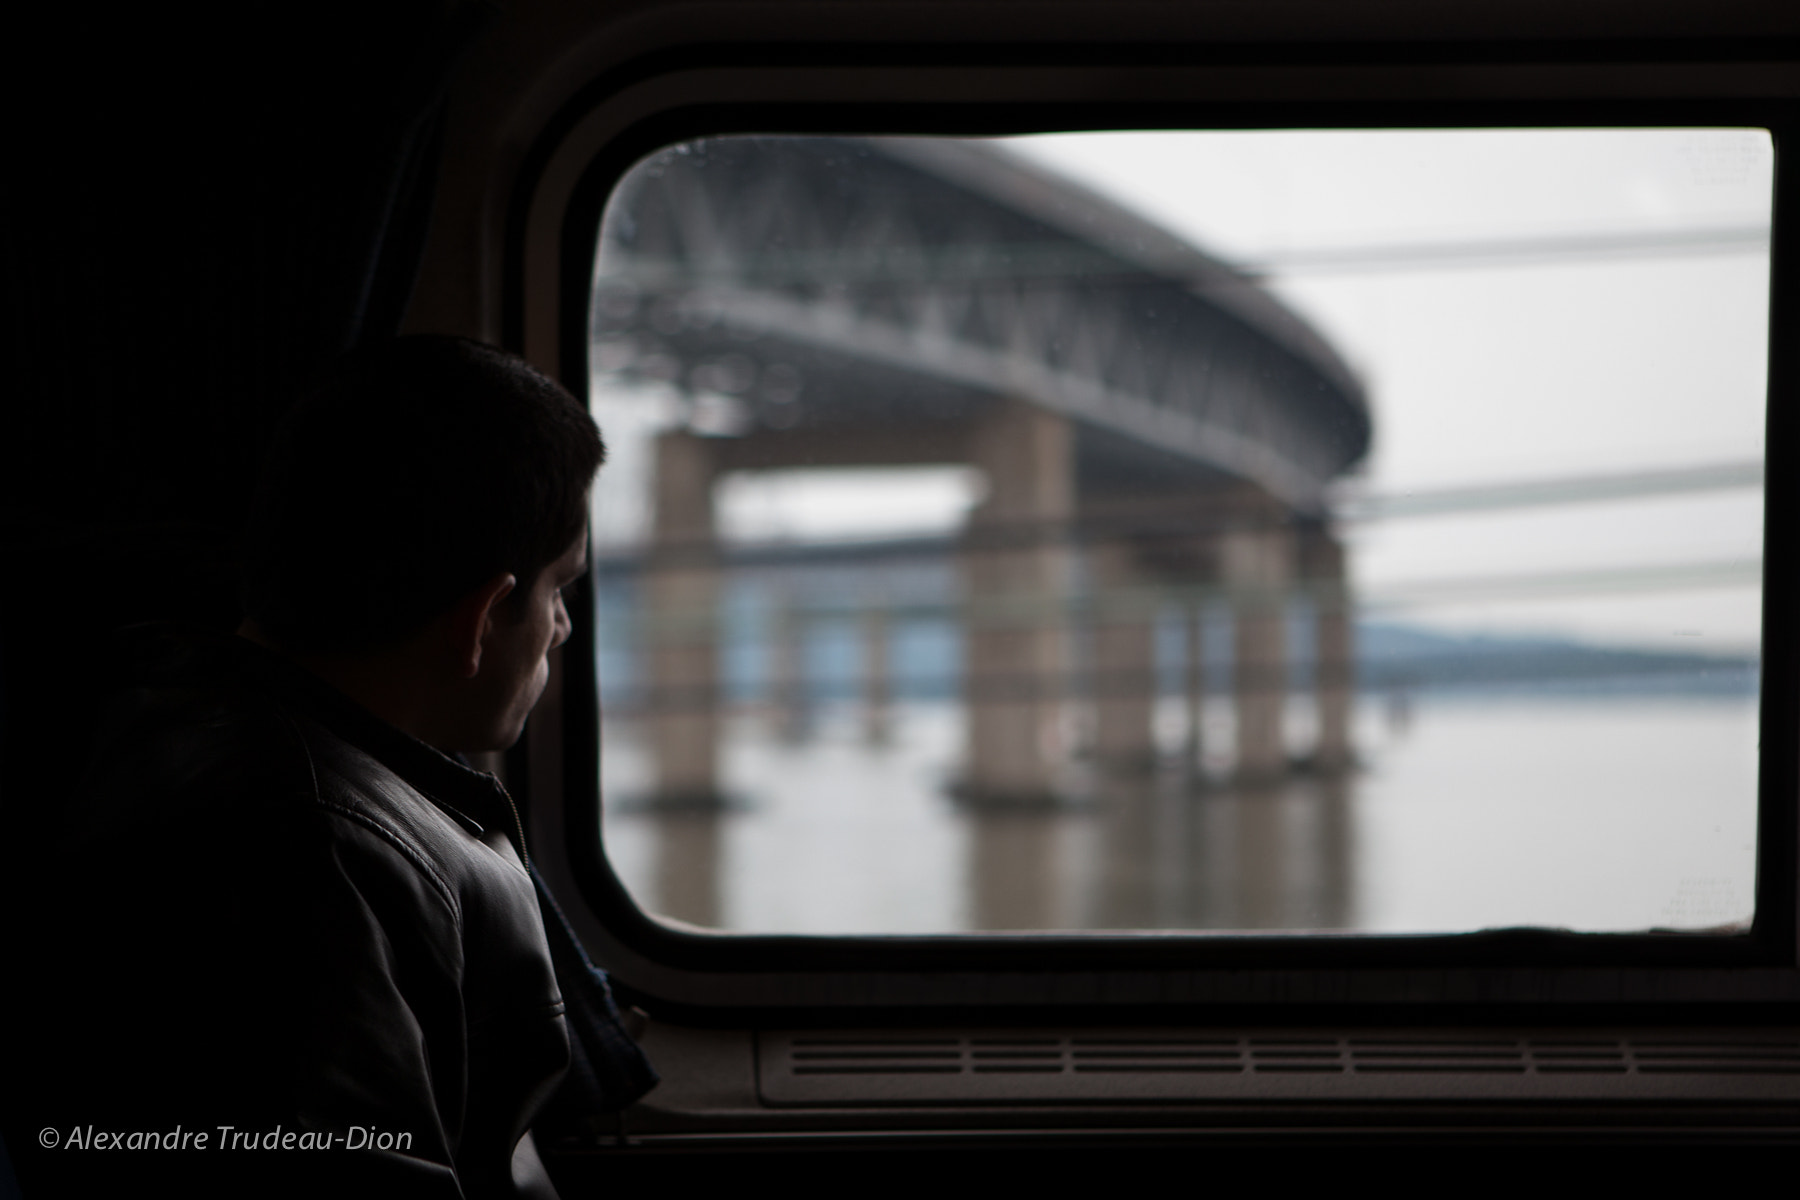 Photograph On the train by Alexandre Trudeau-Dion on 500px